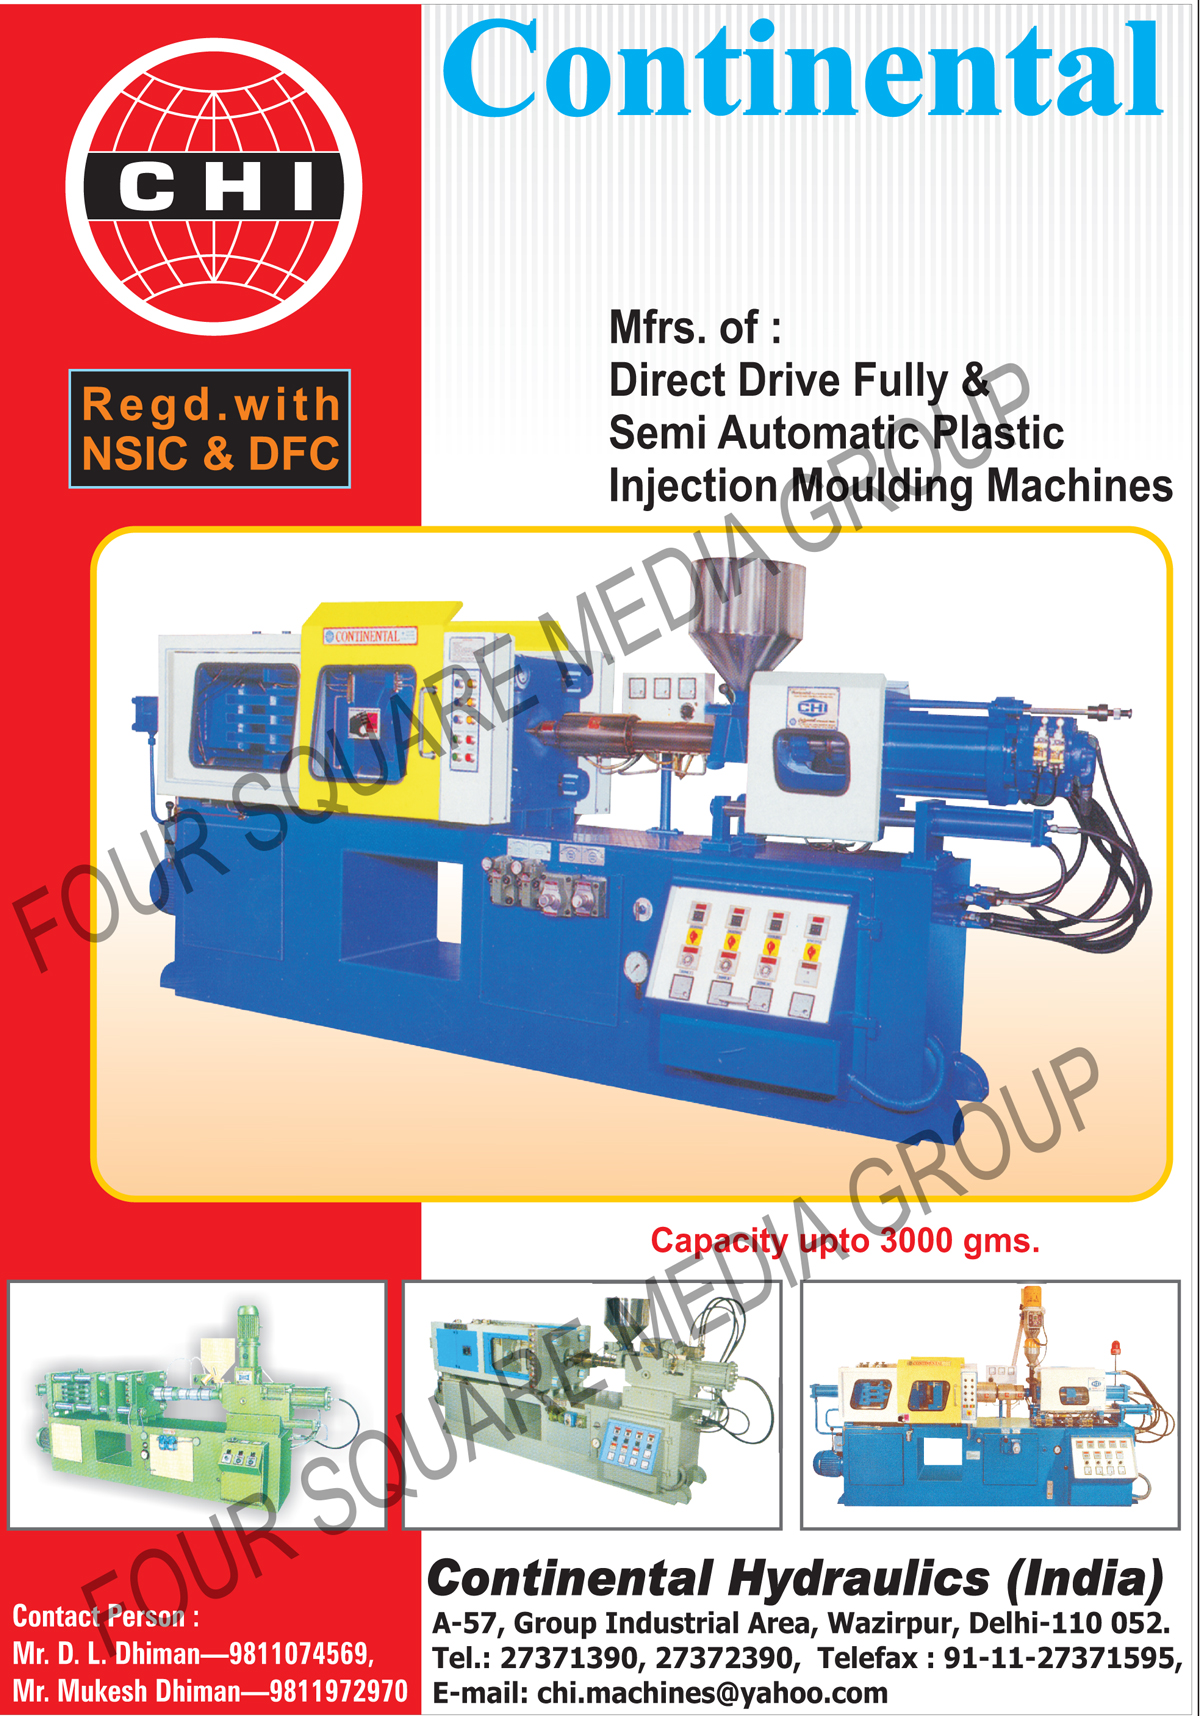 Semi Automatic Plastic Injection Moulding Machines, Fully Automatic Plastic Injection Moulding Machines ,Injection Moulding Machine, Moulding Machine, Plastic Injection Moulding Machine, Injection Moulding Machines, Moulding Machines, Plastic Injection Moulding Machines, Direct Drive Injection Moulding Machine, Automatic Injection Moulding Machine,